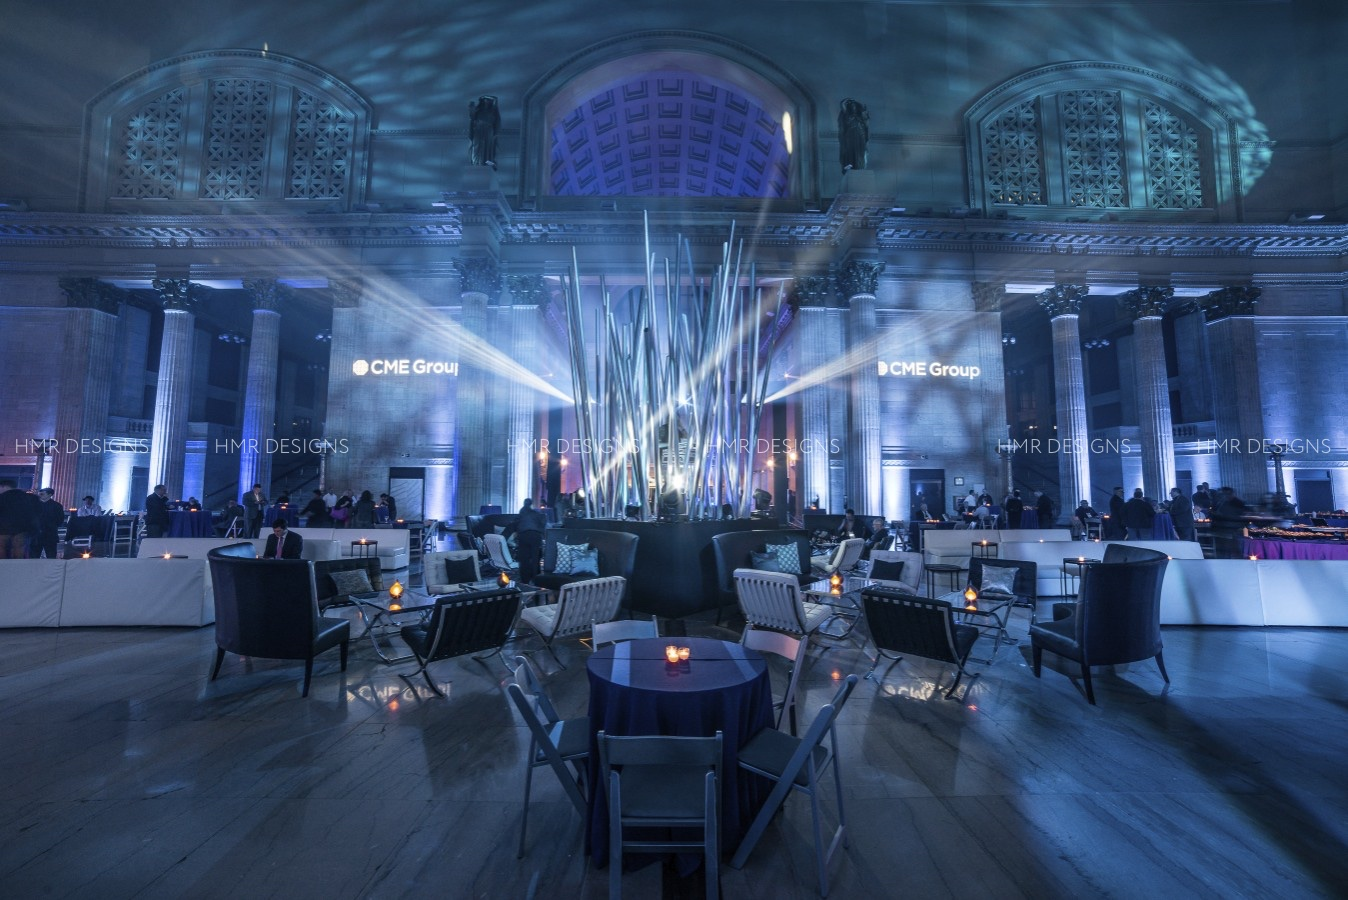 Stunning corporate event decor at Union Station Chicago by HMR Designs